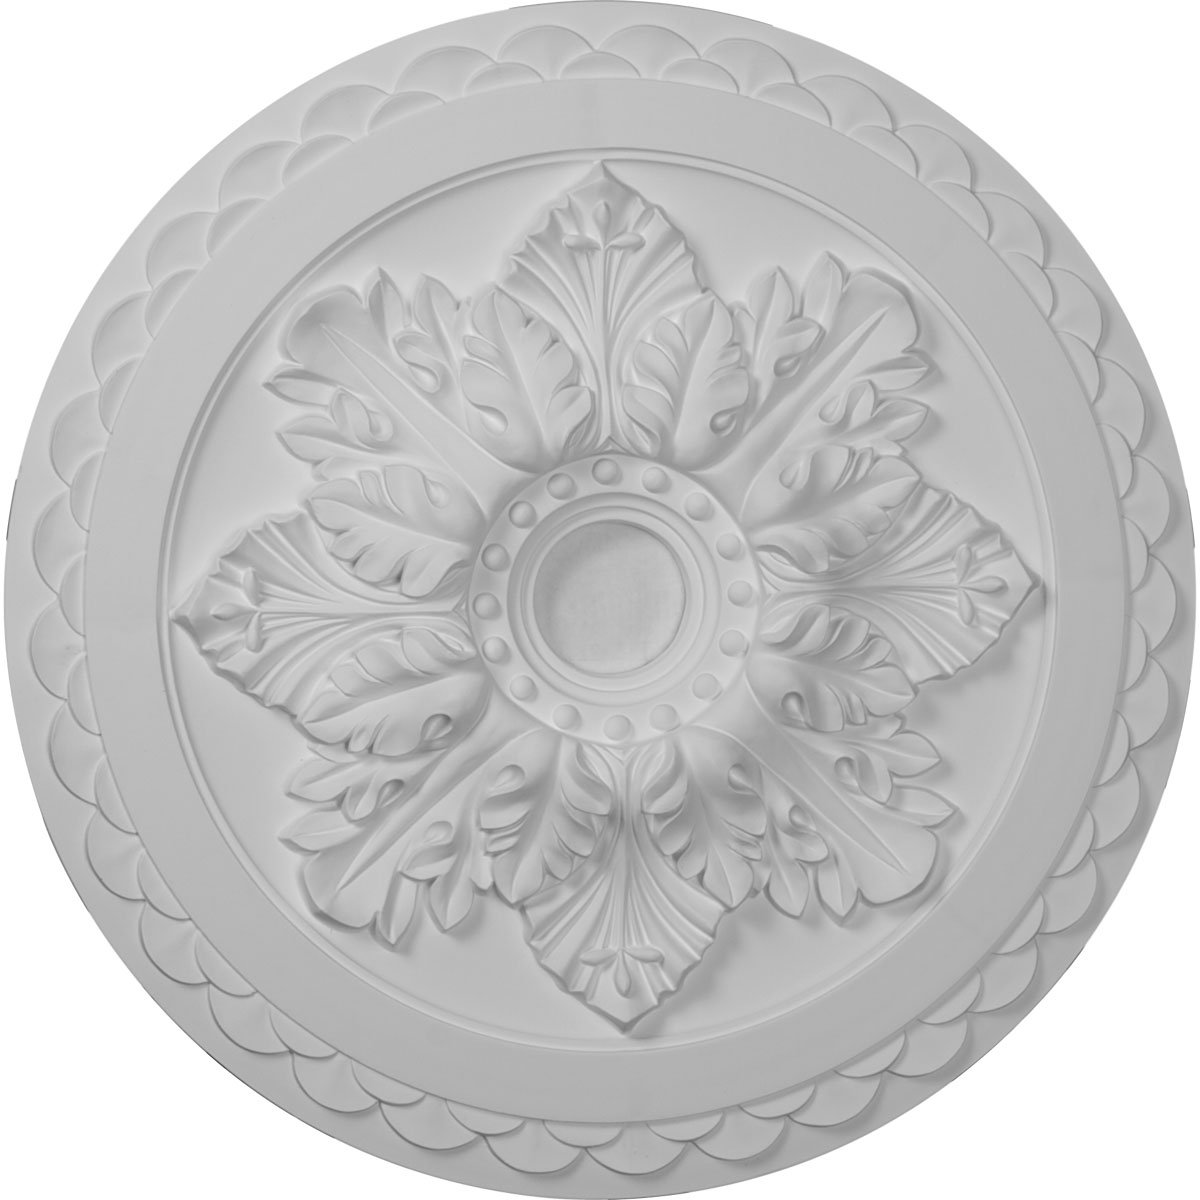 Ekena Millwork CM23BO 23 5/8-Inch OD x 3-Inch ID x 2-Inch P Bordeaux Deluxe Ceiling Medallion